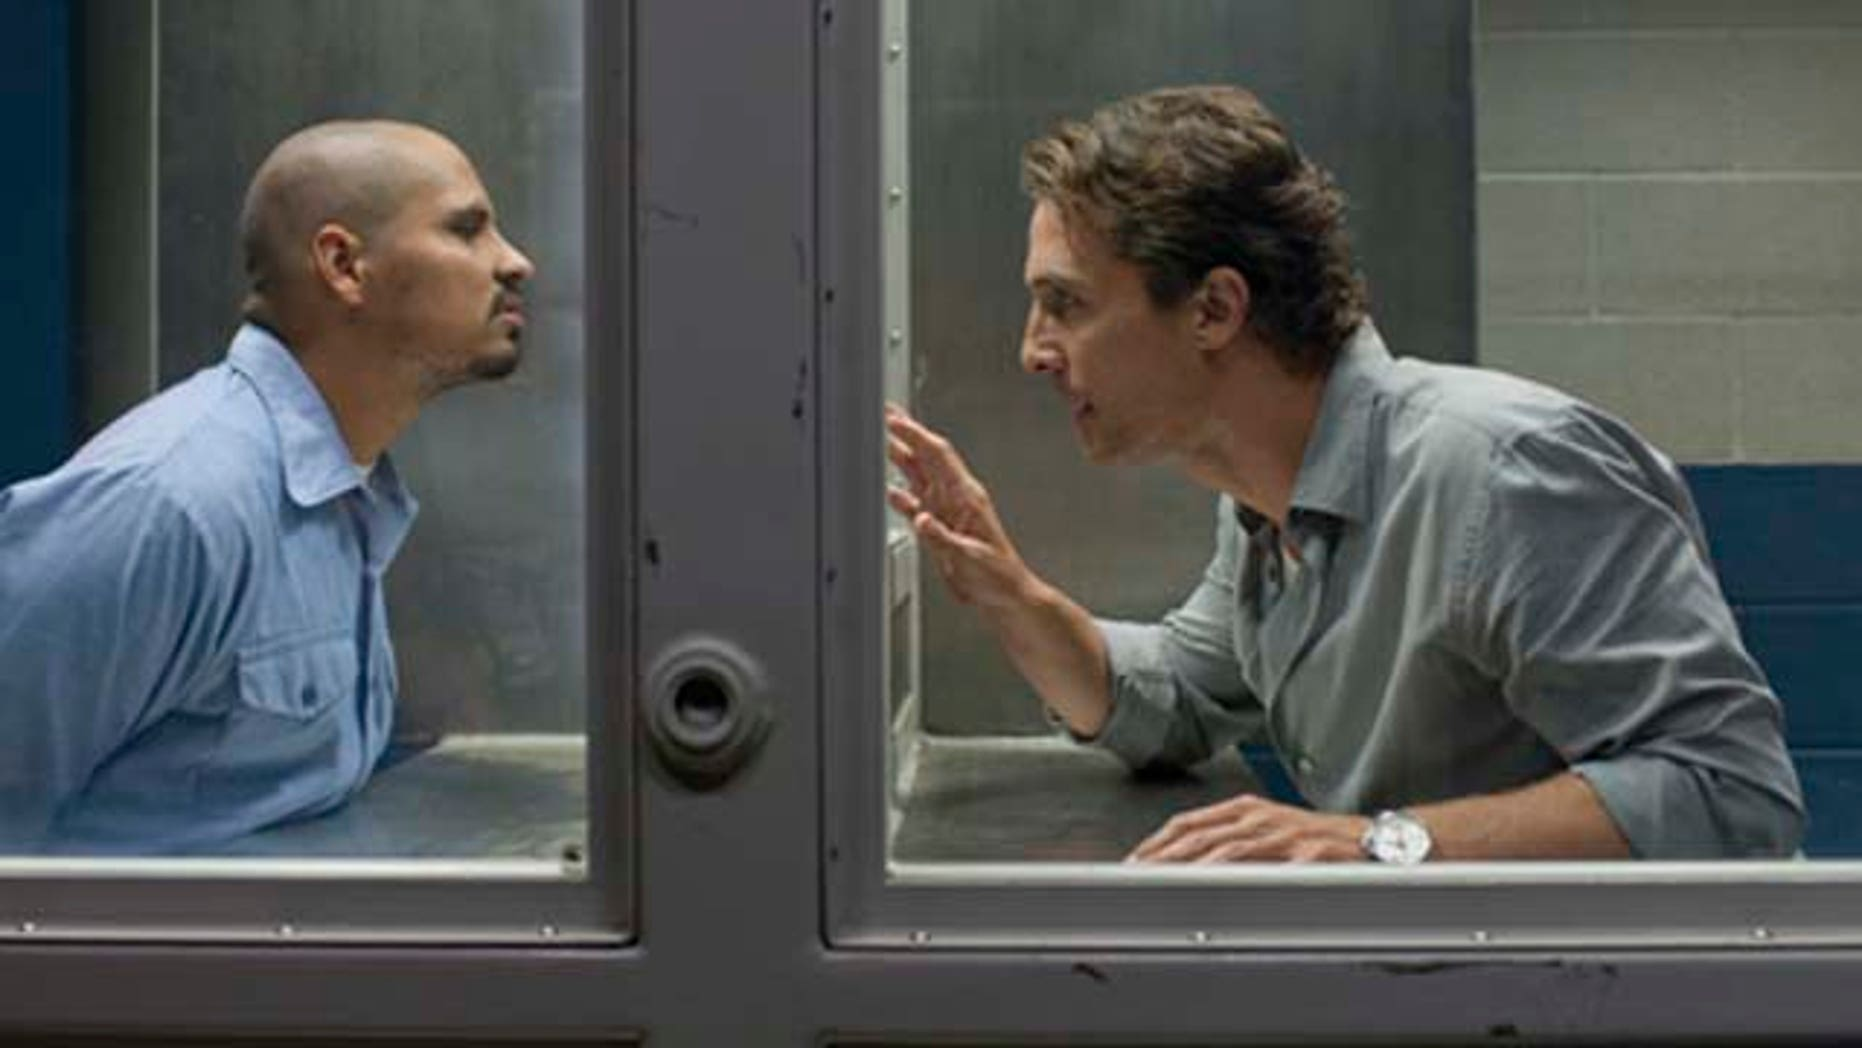 Jesus Martinez (Michael Peña, left) and Mick Haller (Matthew McConaughey, right) in  THE LINCOLN LAWYER.